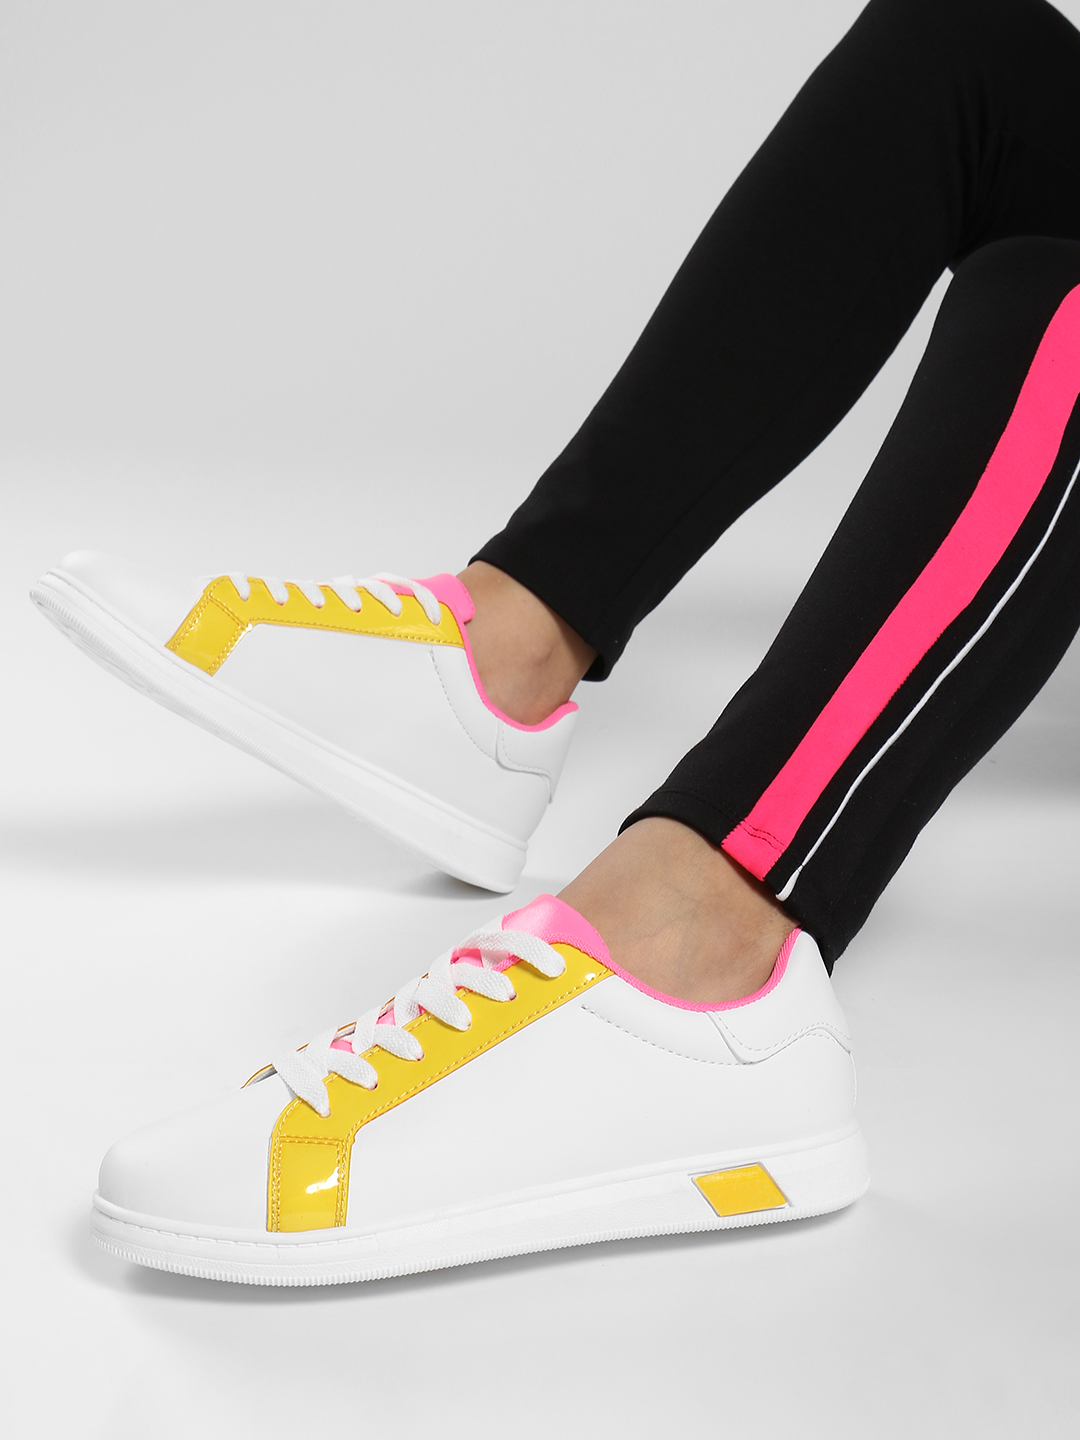 Ideal Shoes Yellow Colour Block Lace-Up Sneakers 1